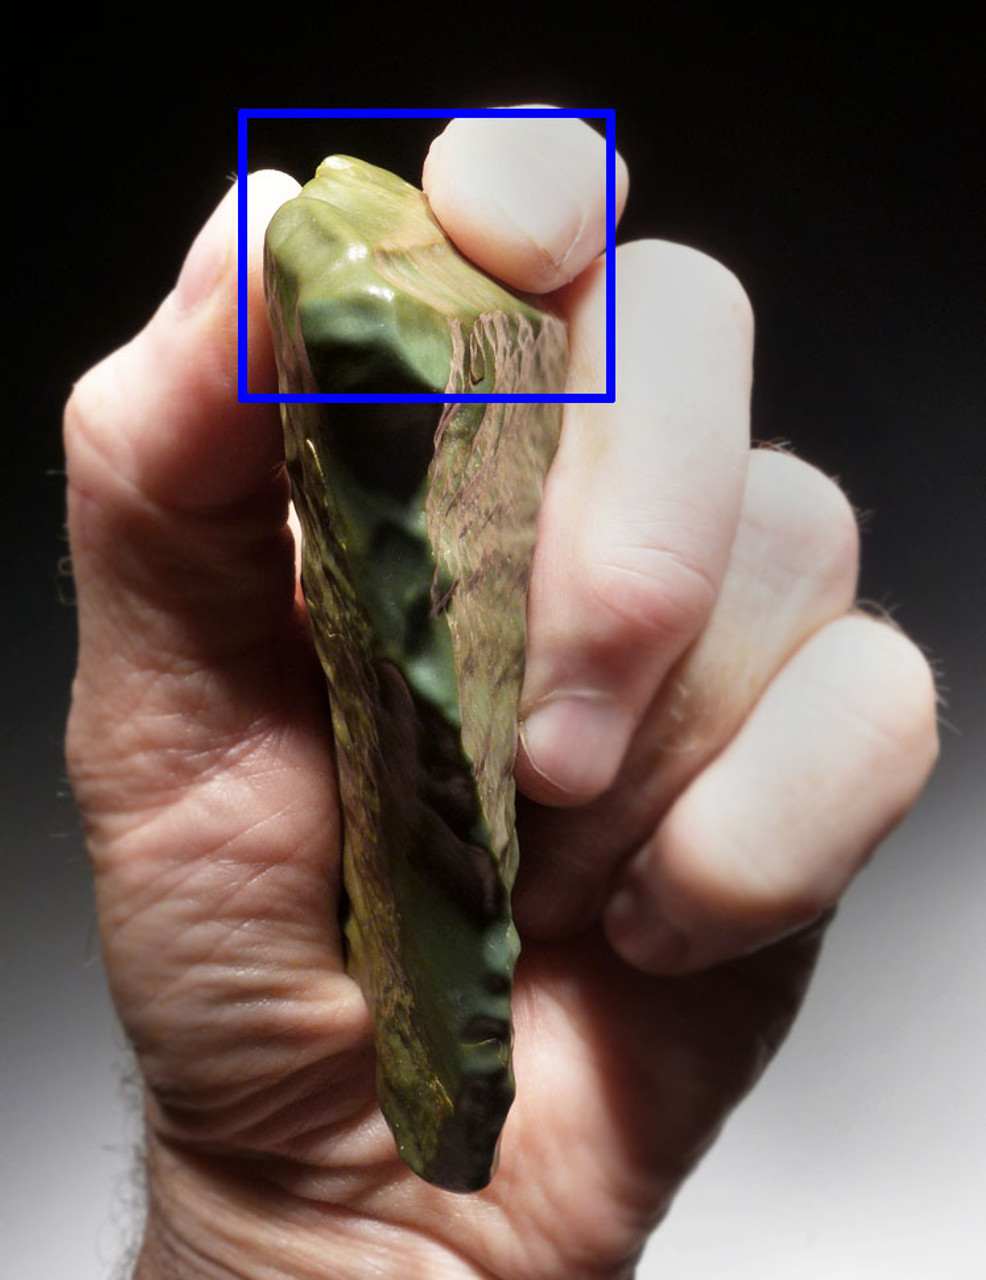 BEAUTIFUL TENERIAN NEOLITHIC LARGE GREEN JASPER FLAKE KNIFE FROM THE TENEREAN CULTURE OF THE GREEN SAHARA *CAP213